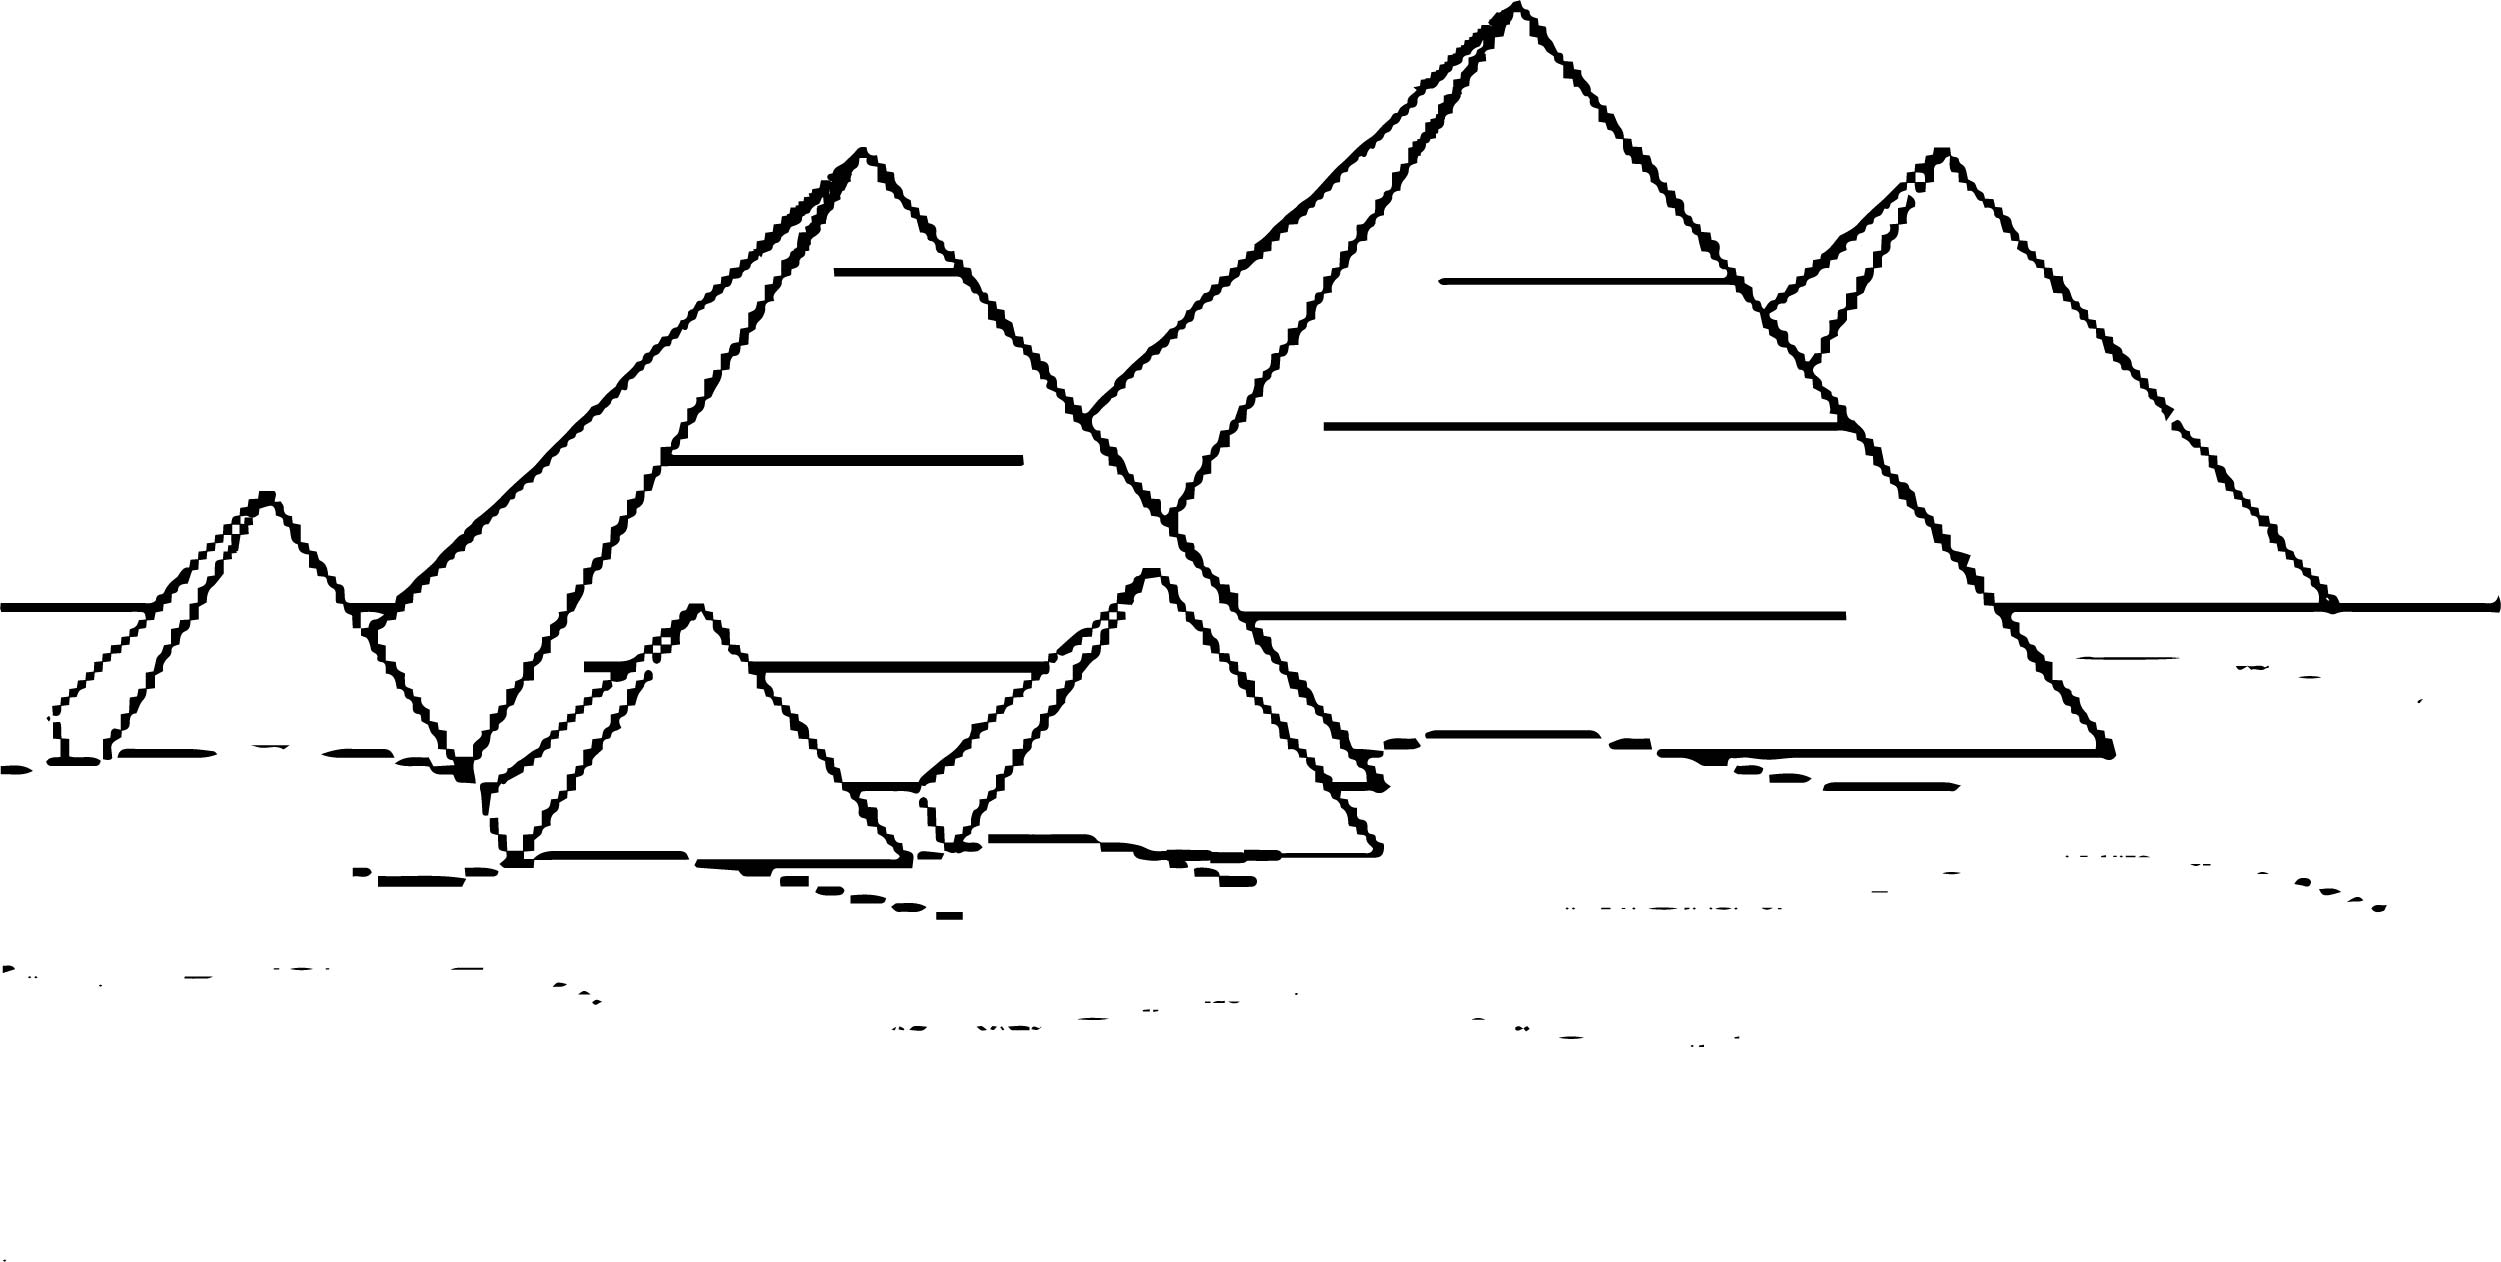 Egypt flag coloring page 3149354 - datu-mo.info